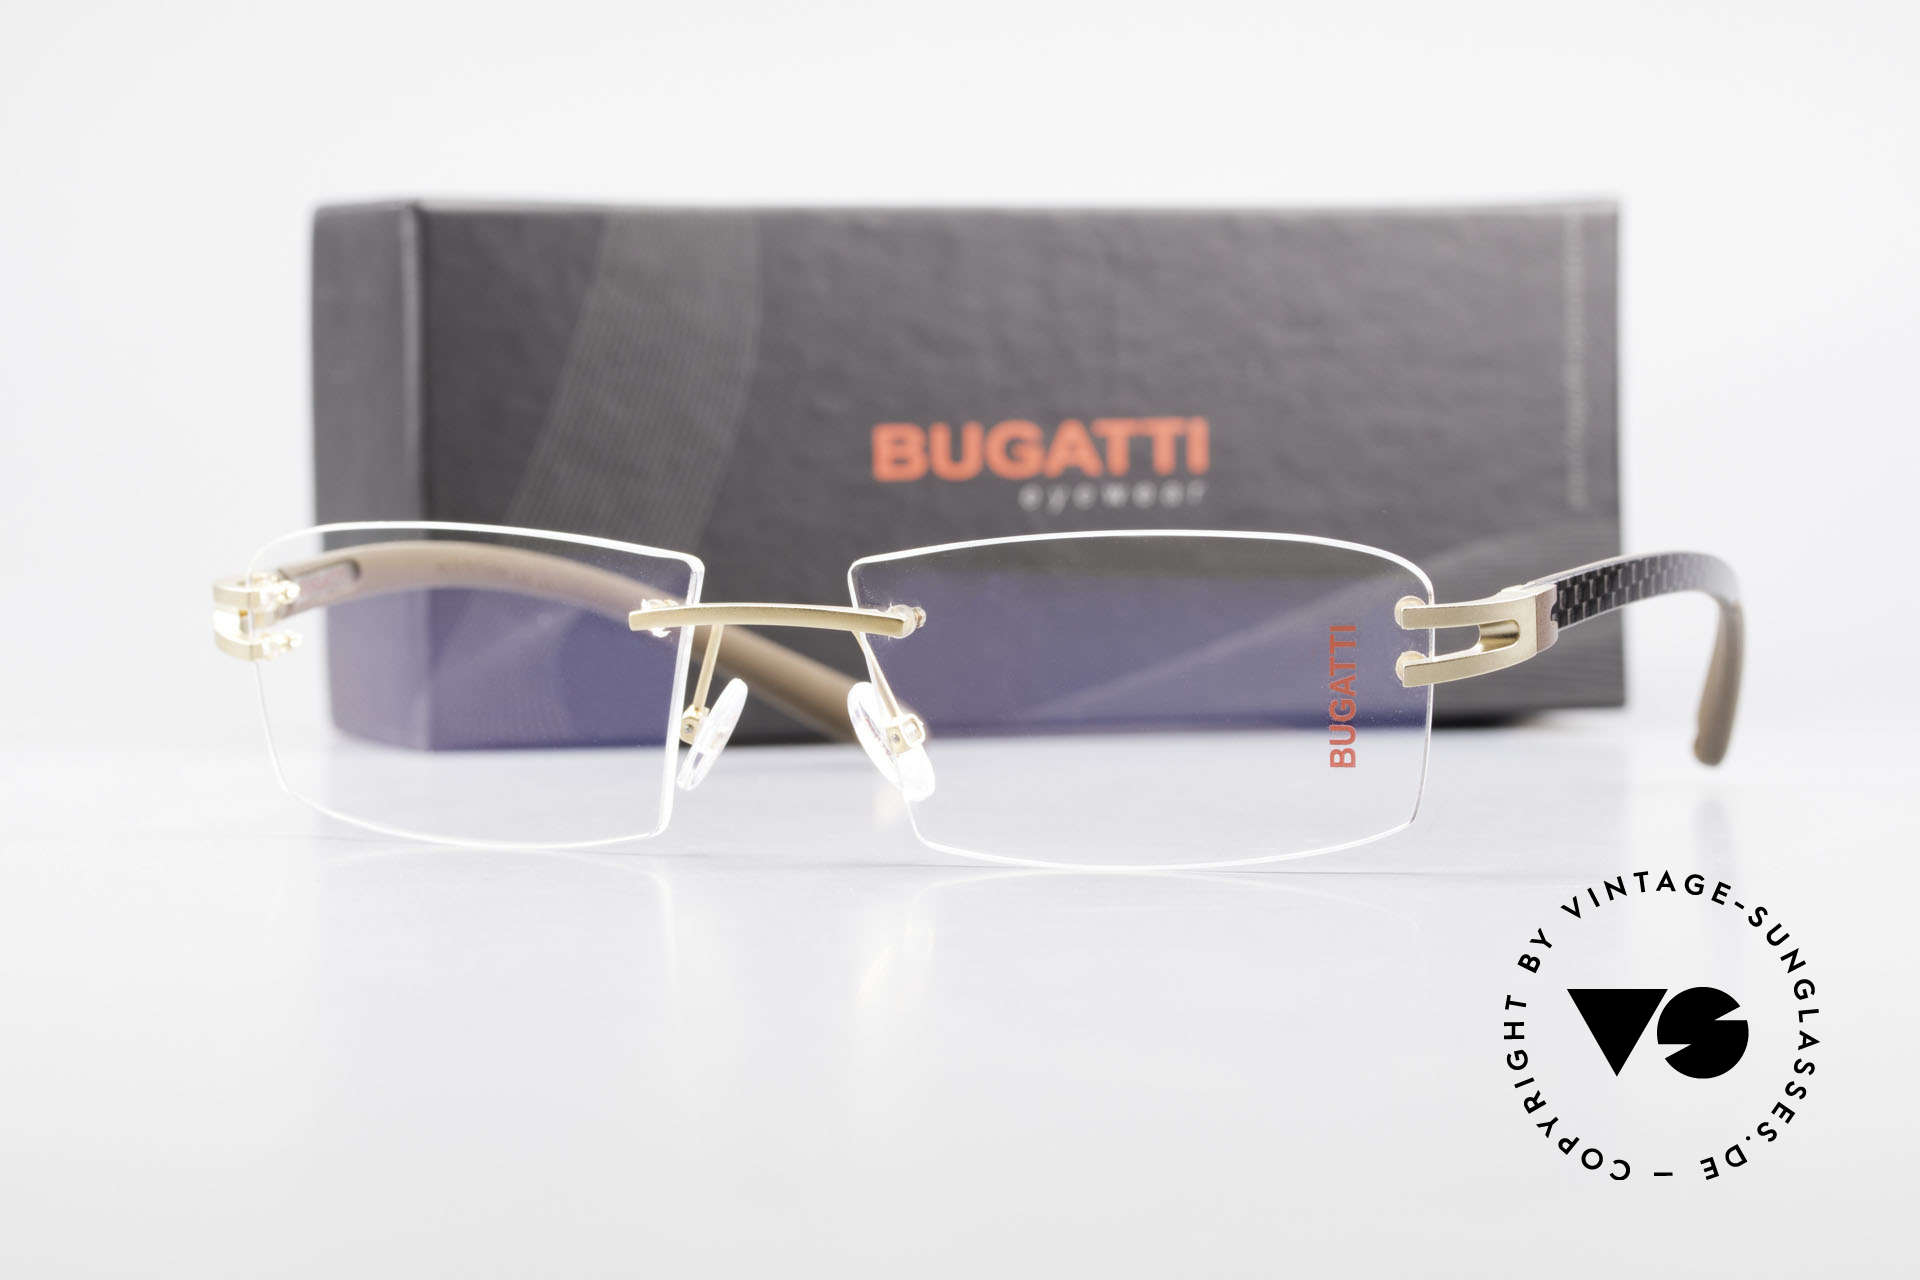 Bugatti 465 Rimless Glasses Carbon Gold, Size: large, Made for Men